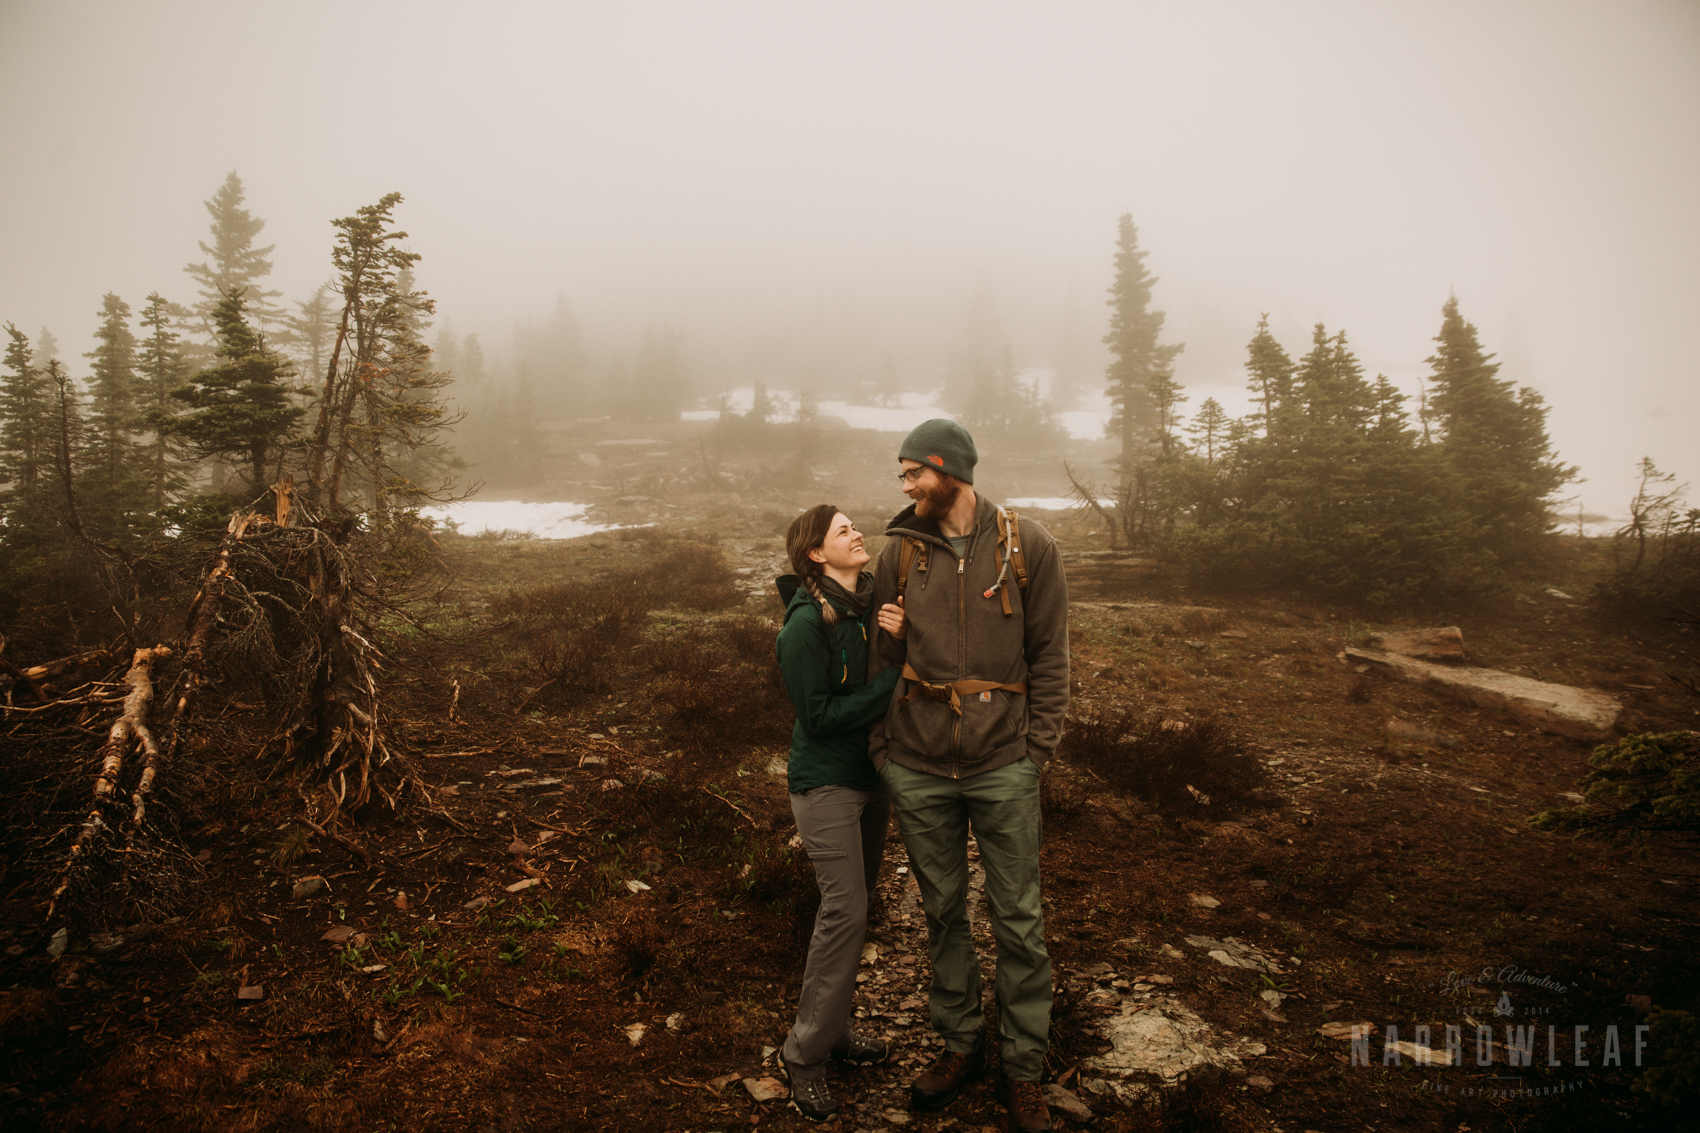 logan-pass-montana-glacier-national-park-mountain-hiking-engagement-session-Narrowleaf_Love_and_Adventure_Photography-0767.jpg